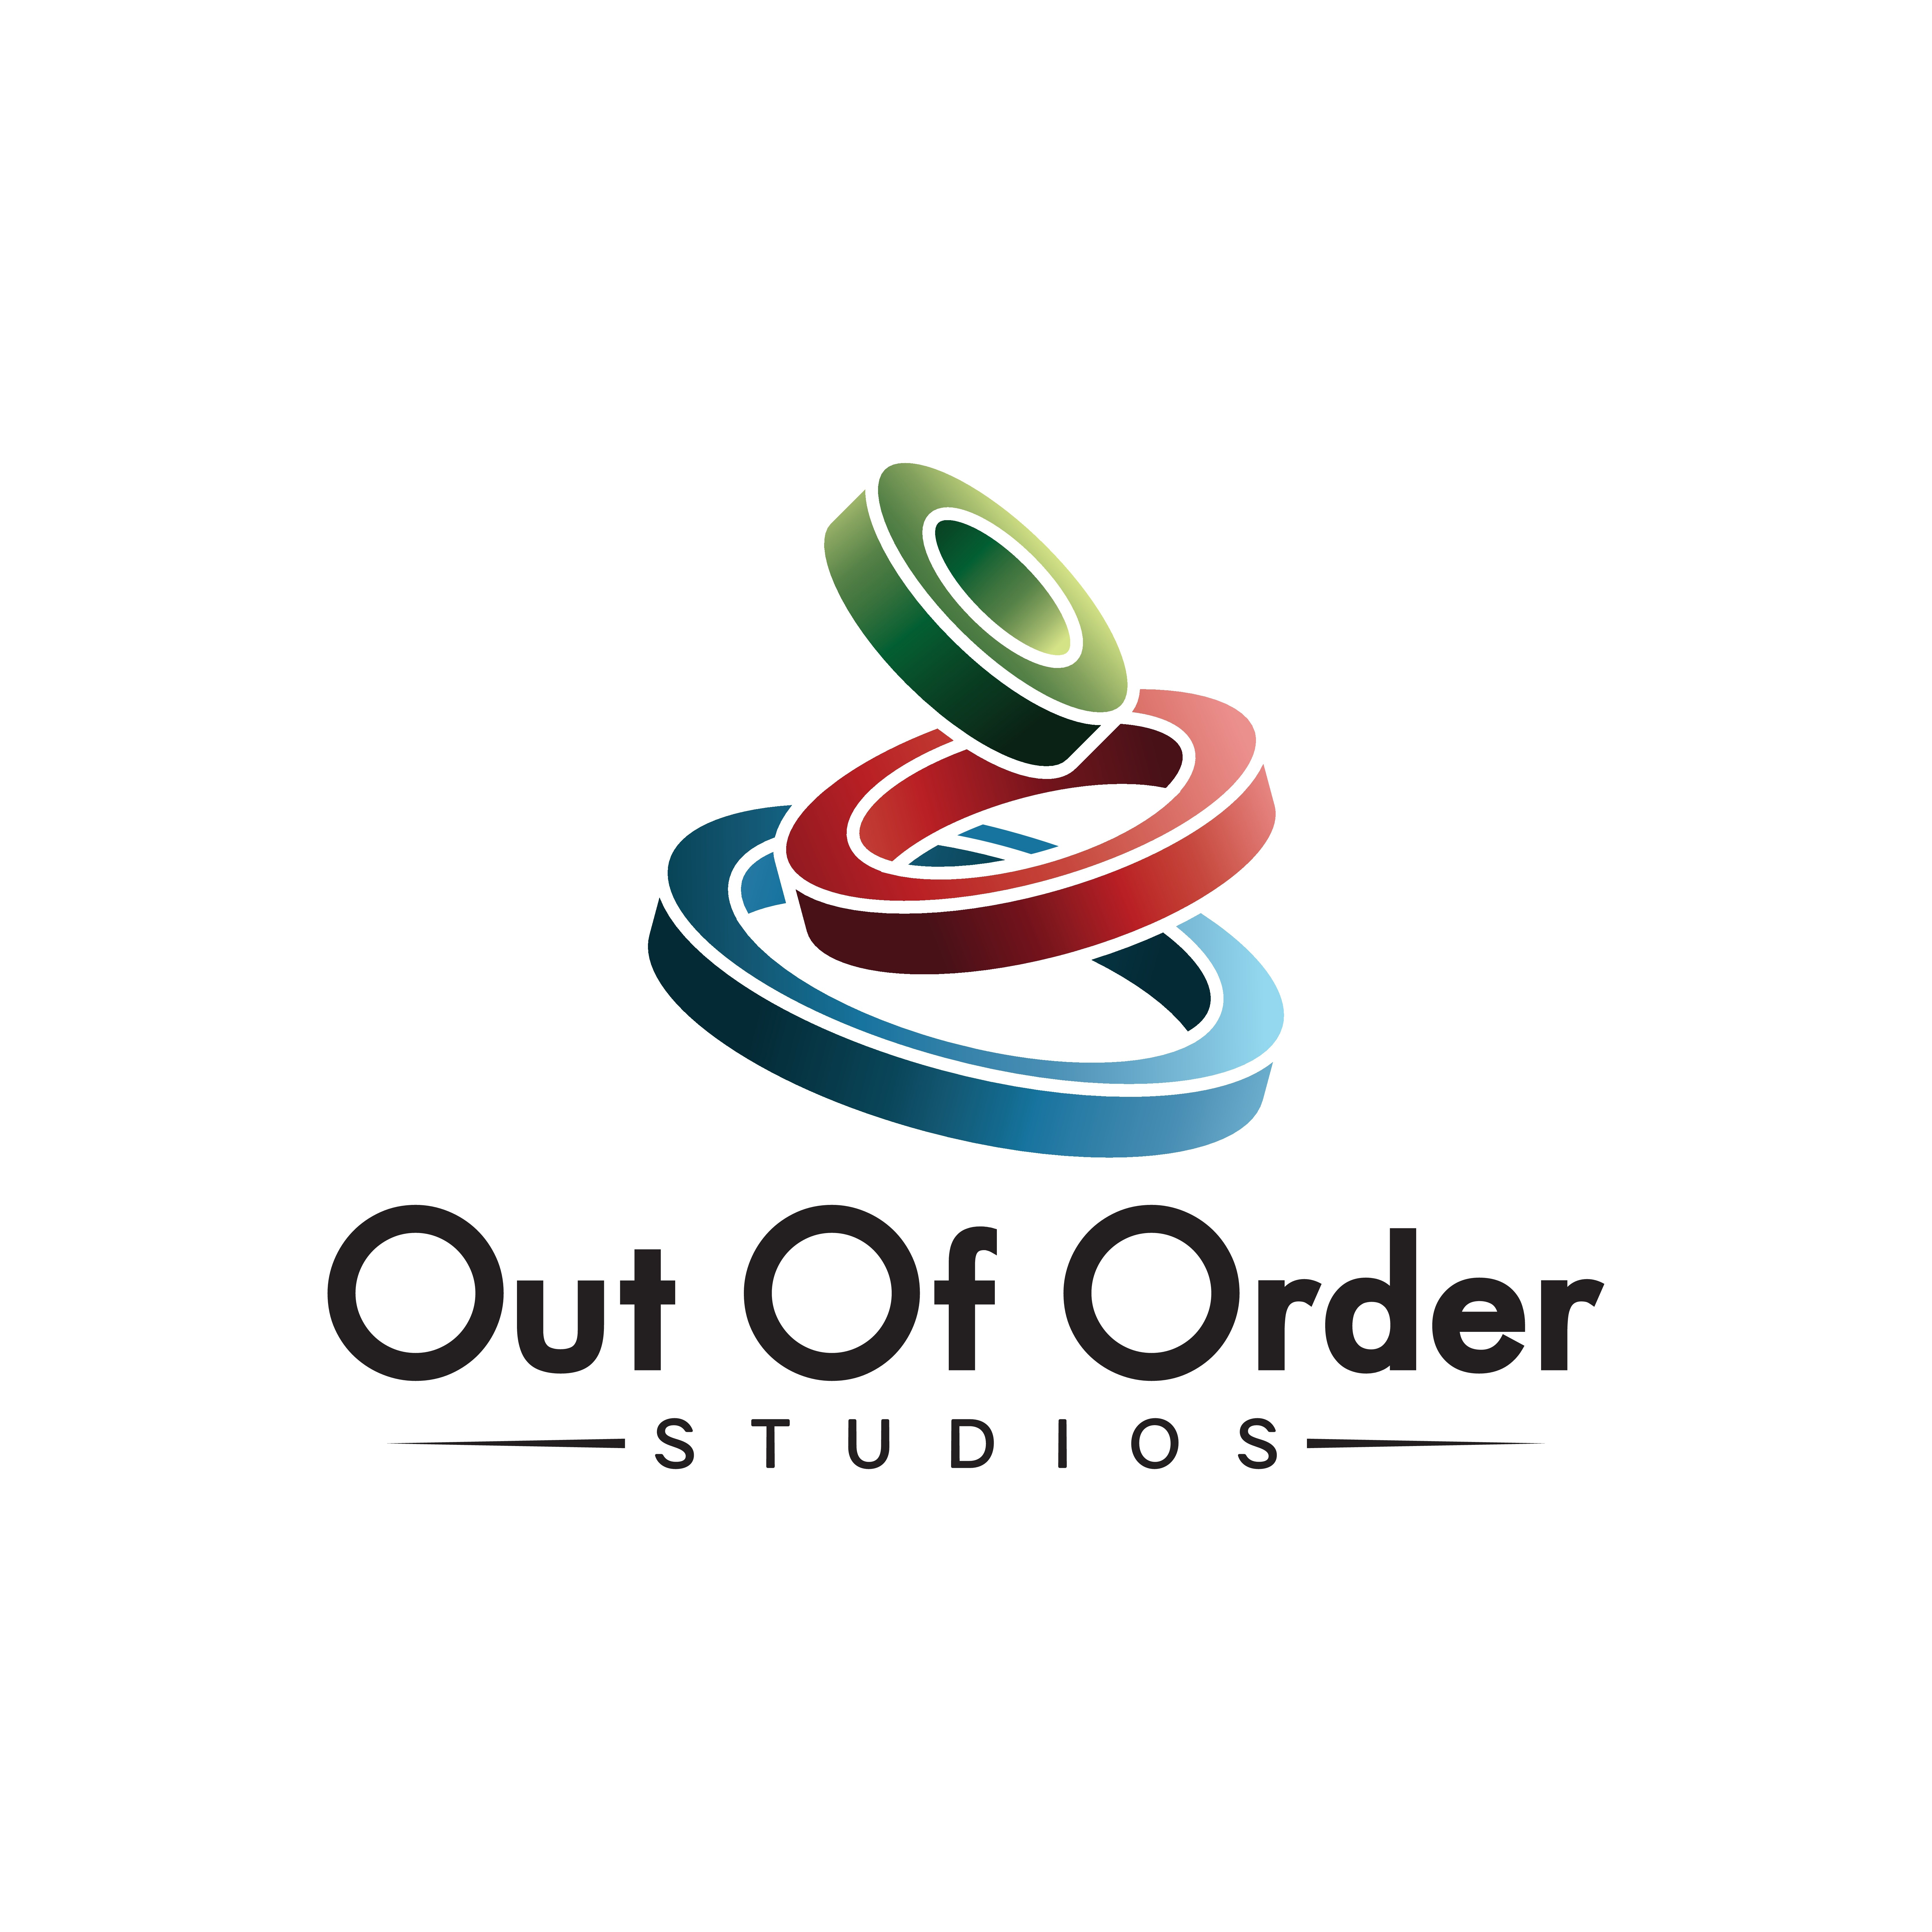 Out of Order Studios Logo Creation